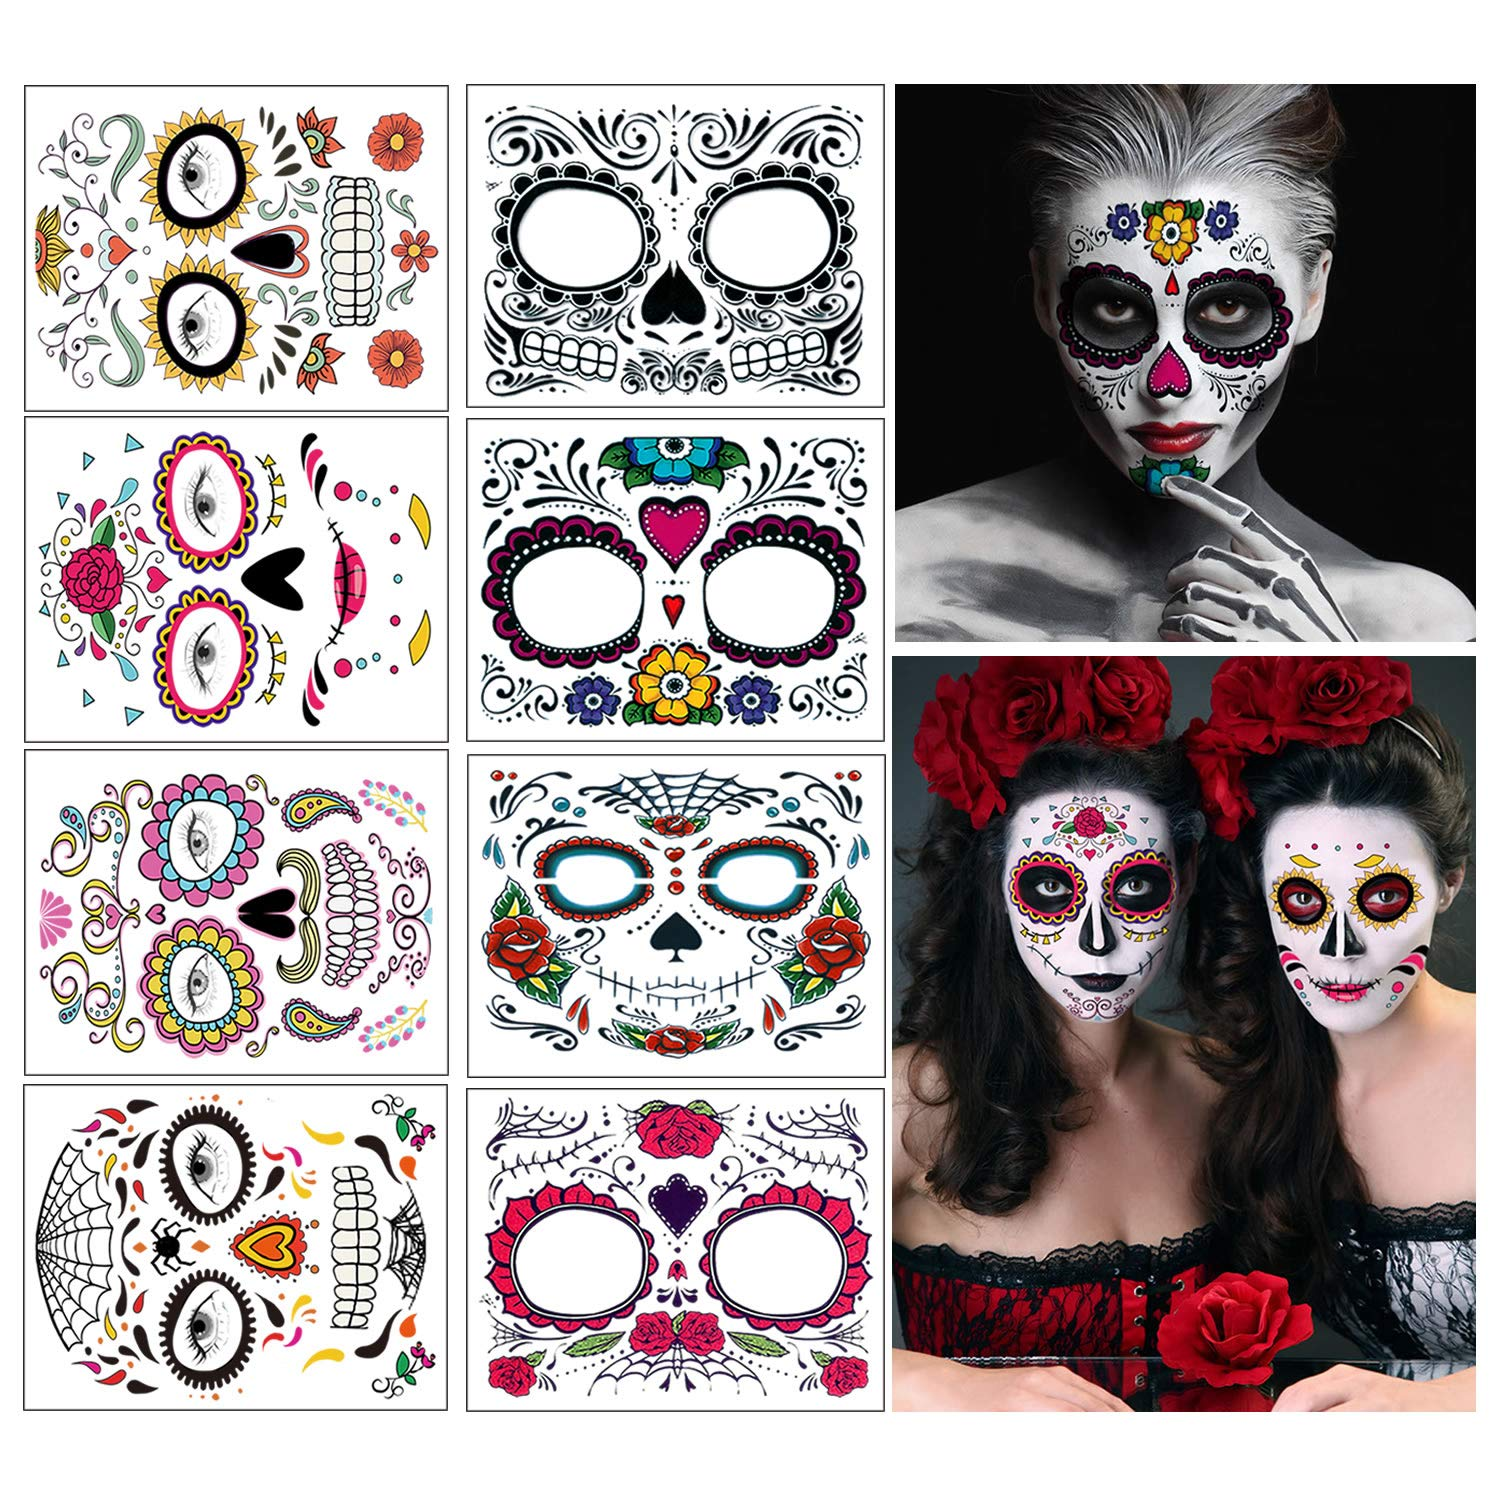 Temporary Face Tattoo, 8 Kits Tattoos Sugar Skull Stickers Day of The Dead Makeup, Face Tattoo Rose Design for Halloween, Masquerade and Parties